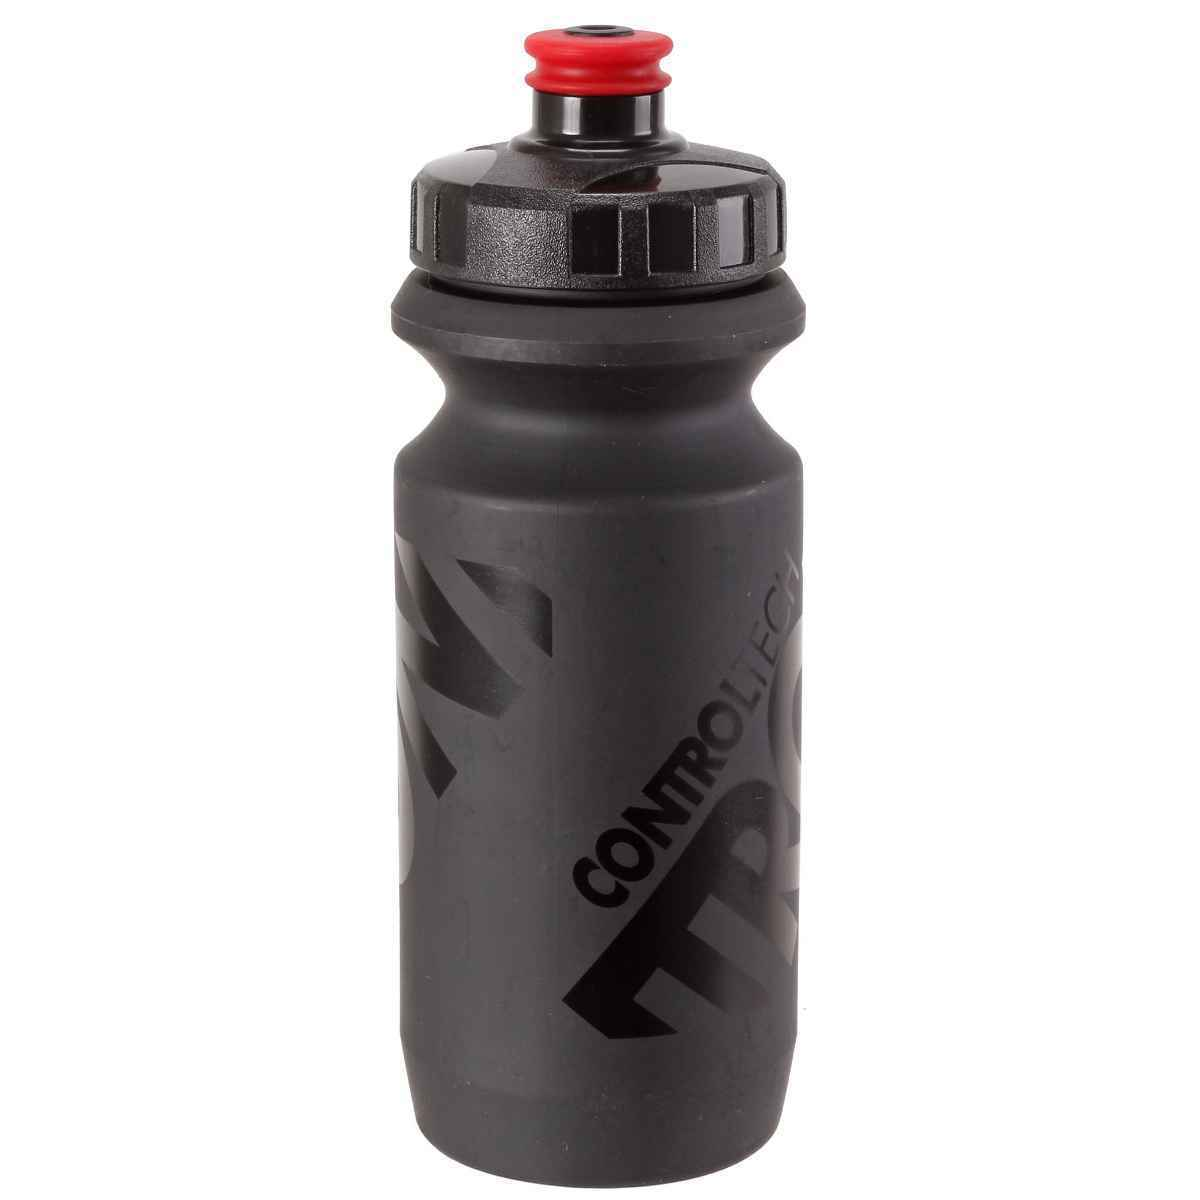 Control Tech Falcon Bicycle Water Bottle,Black 600ml,70g,Road Racing Ultralight Leak-proof Drink Sport Lockable Mouth Cycling